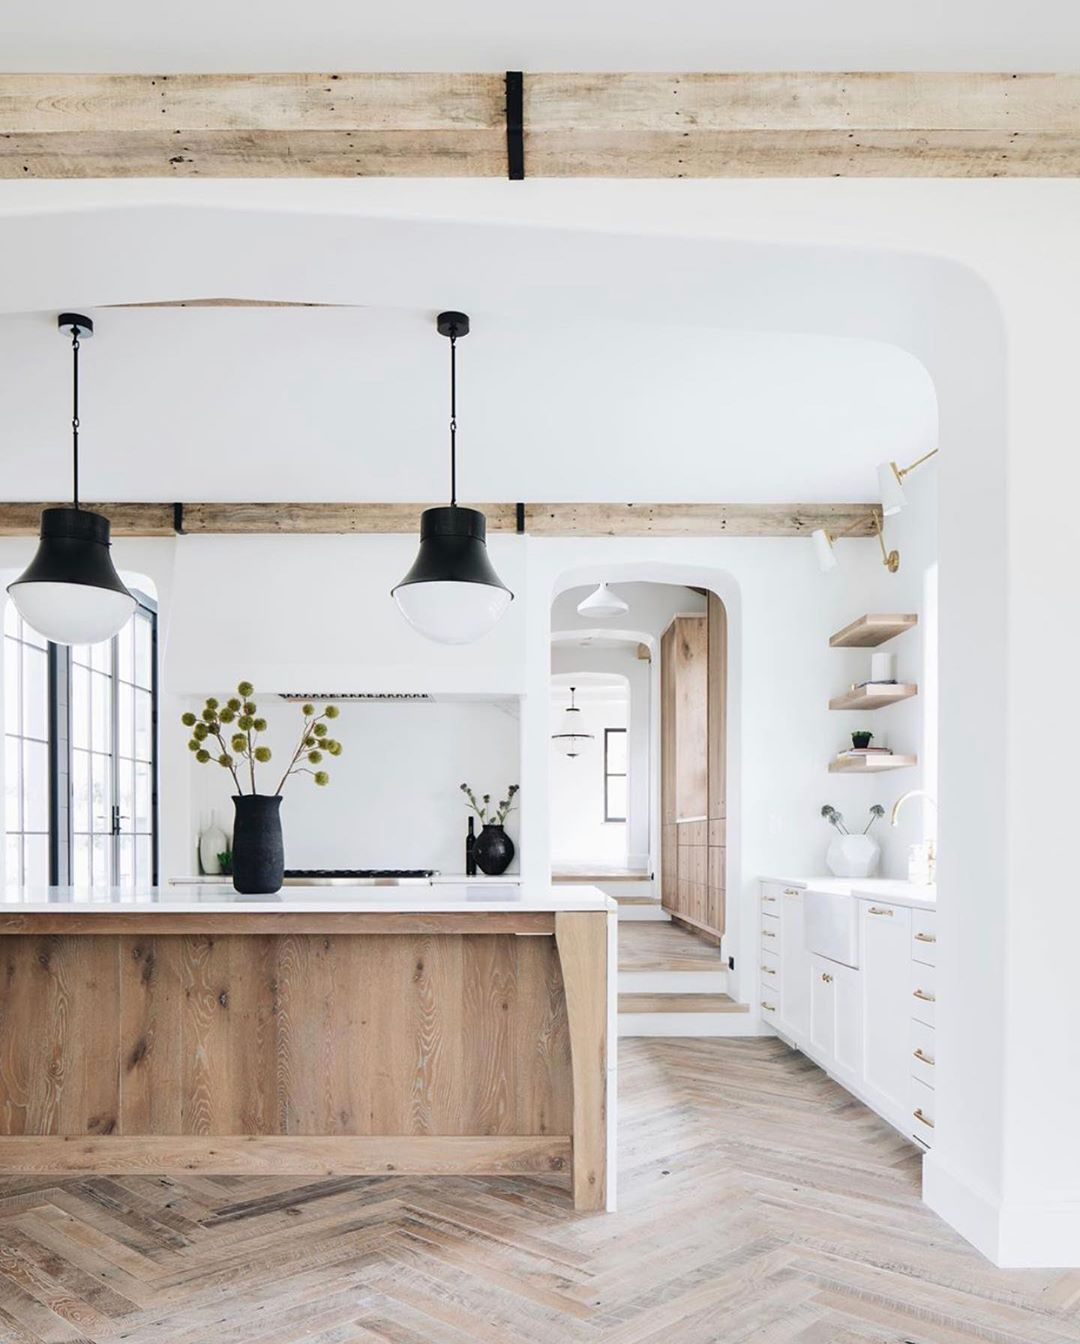 Vivir Design On Instagram We Ve Also Shared Another Angle Of This Breathtaking Kitchen In The Farmhouse Style Kitchen Scandinavian Style Home Home Remodeling